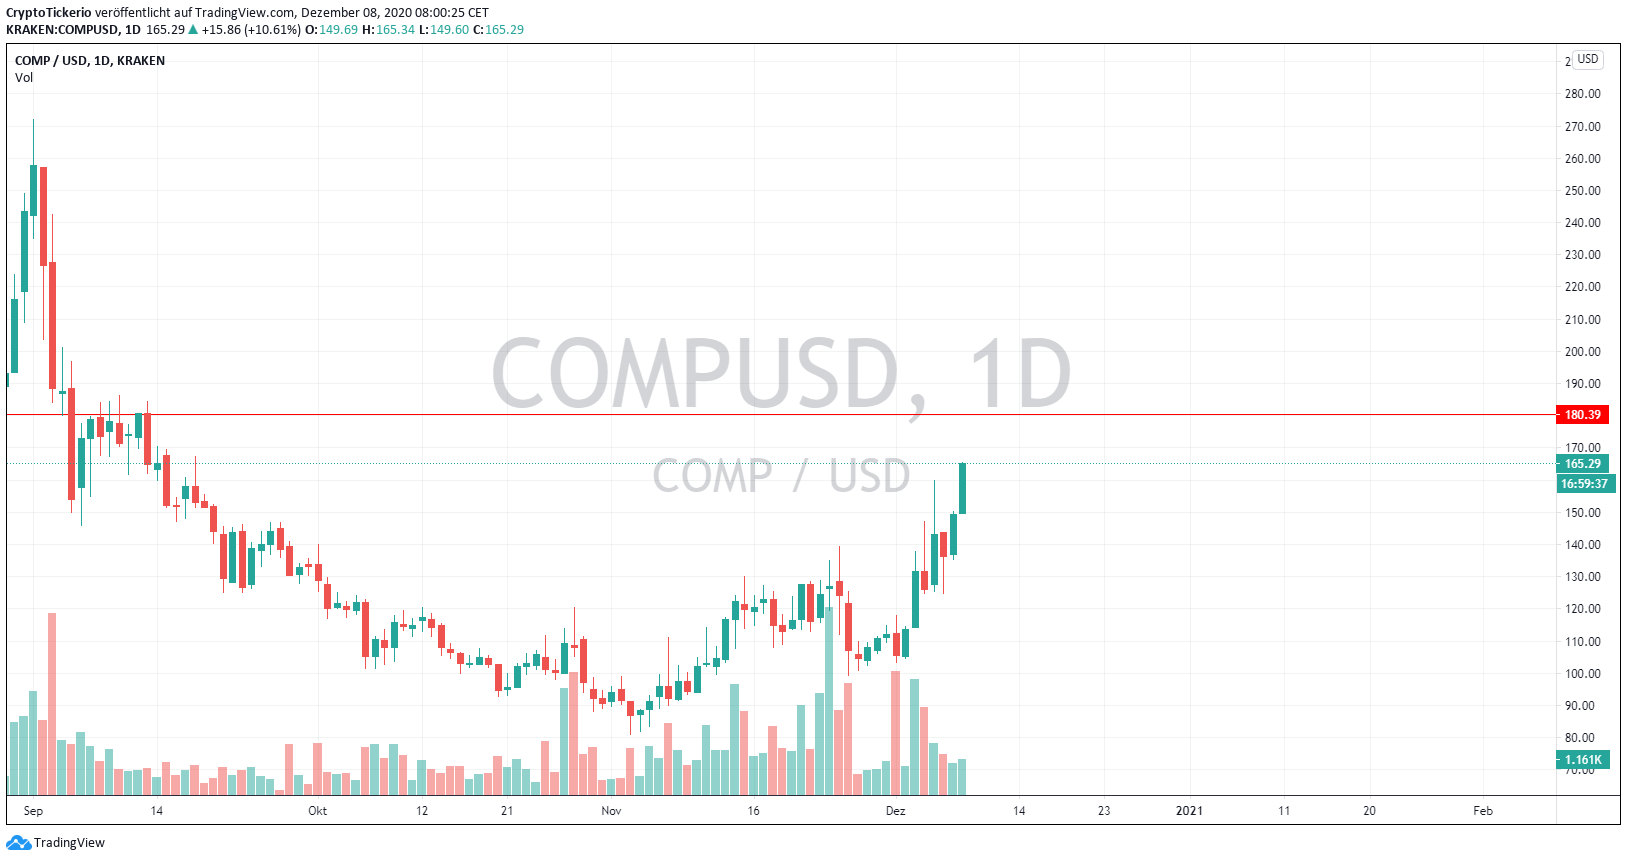 COMP/USD 1-day chart